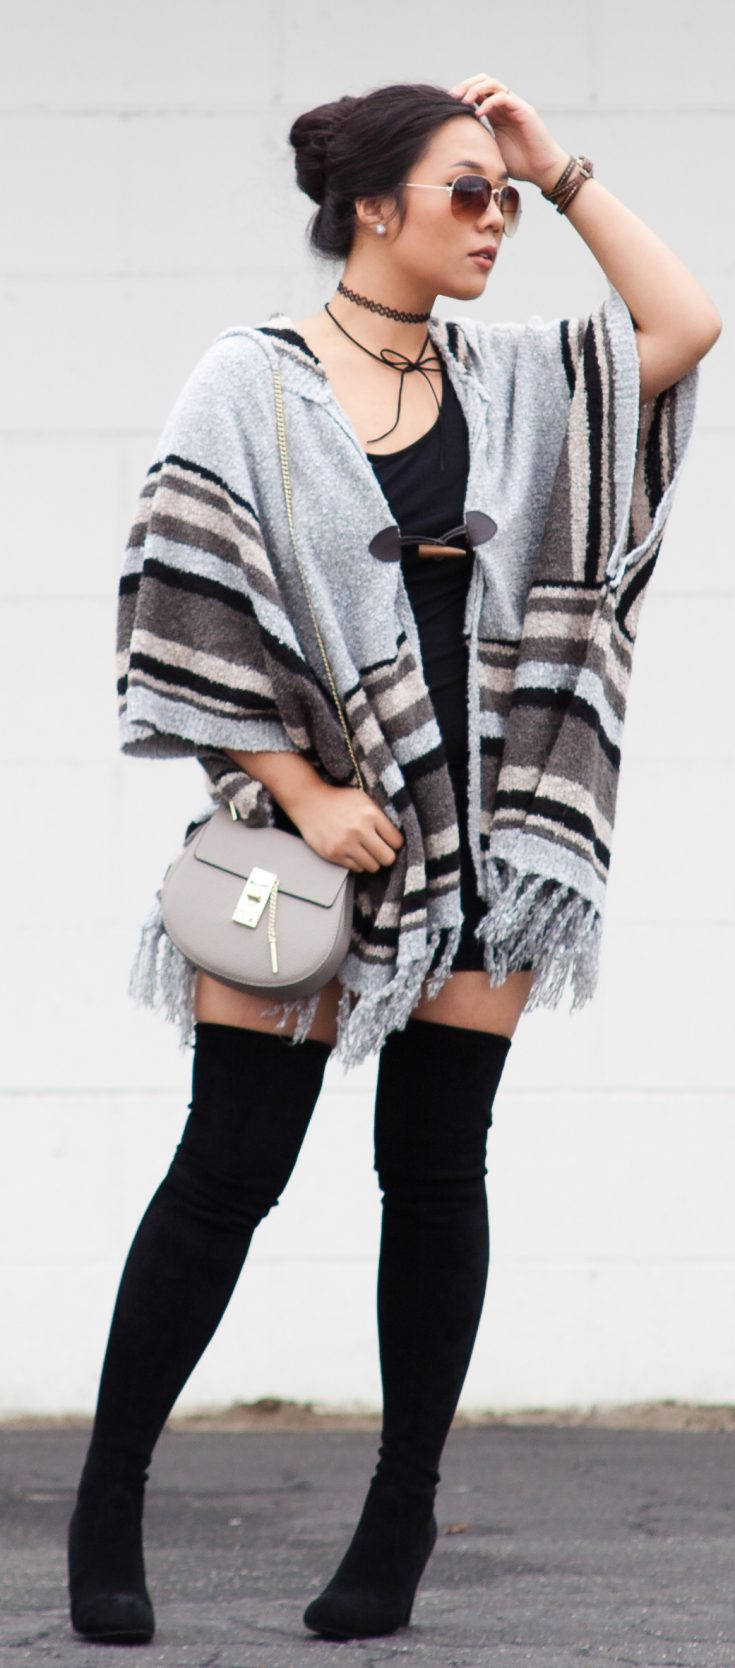 Shop the Look - Poncho: $22.90